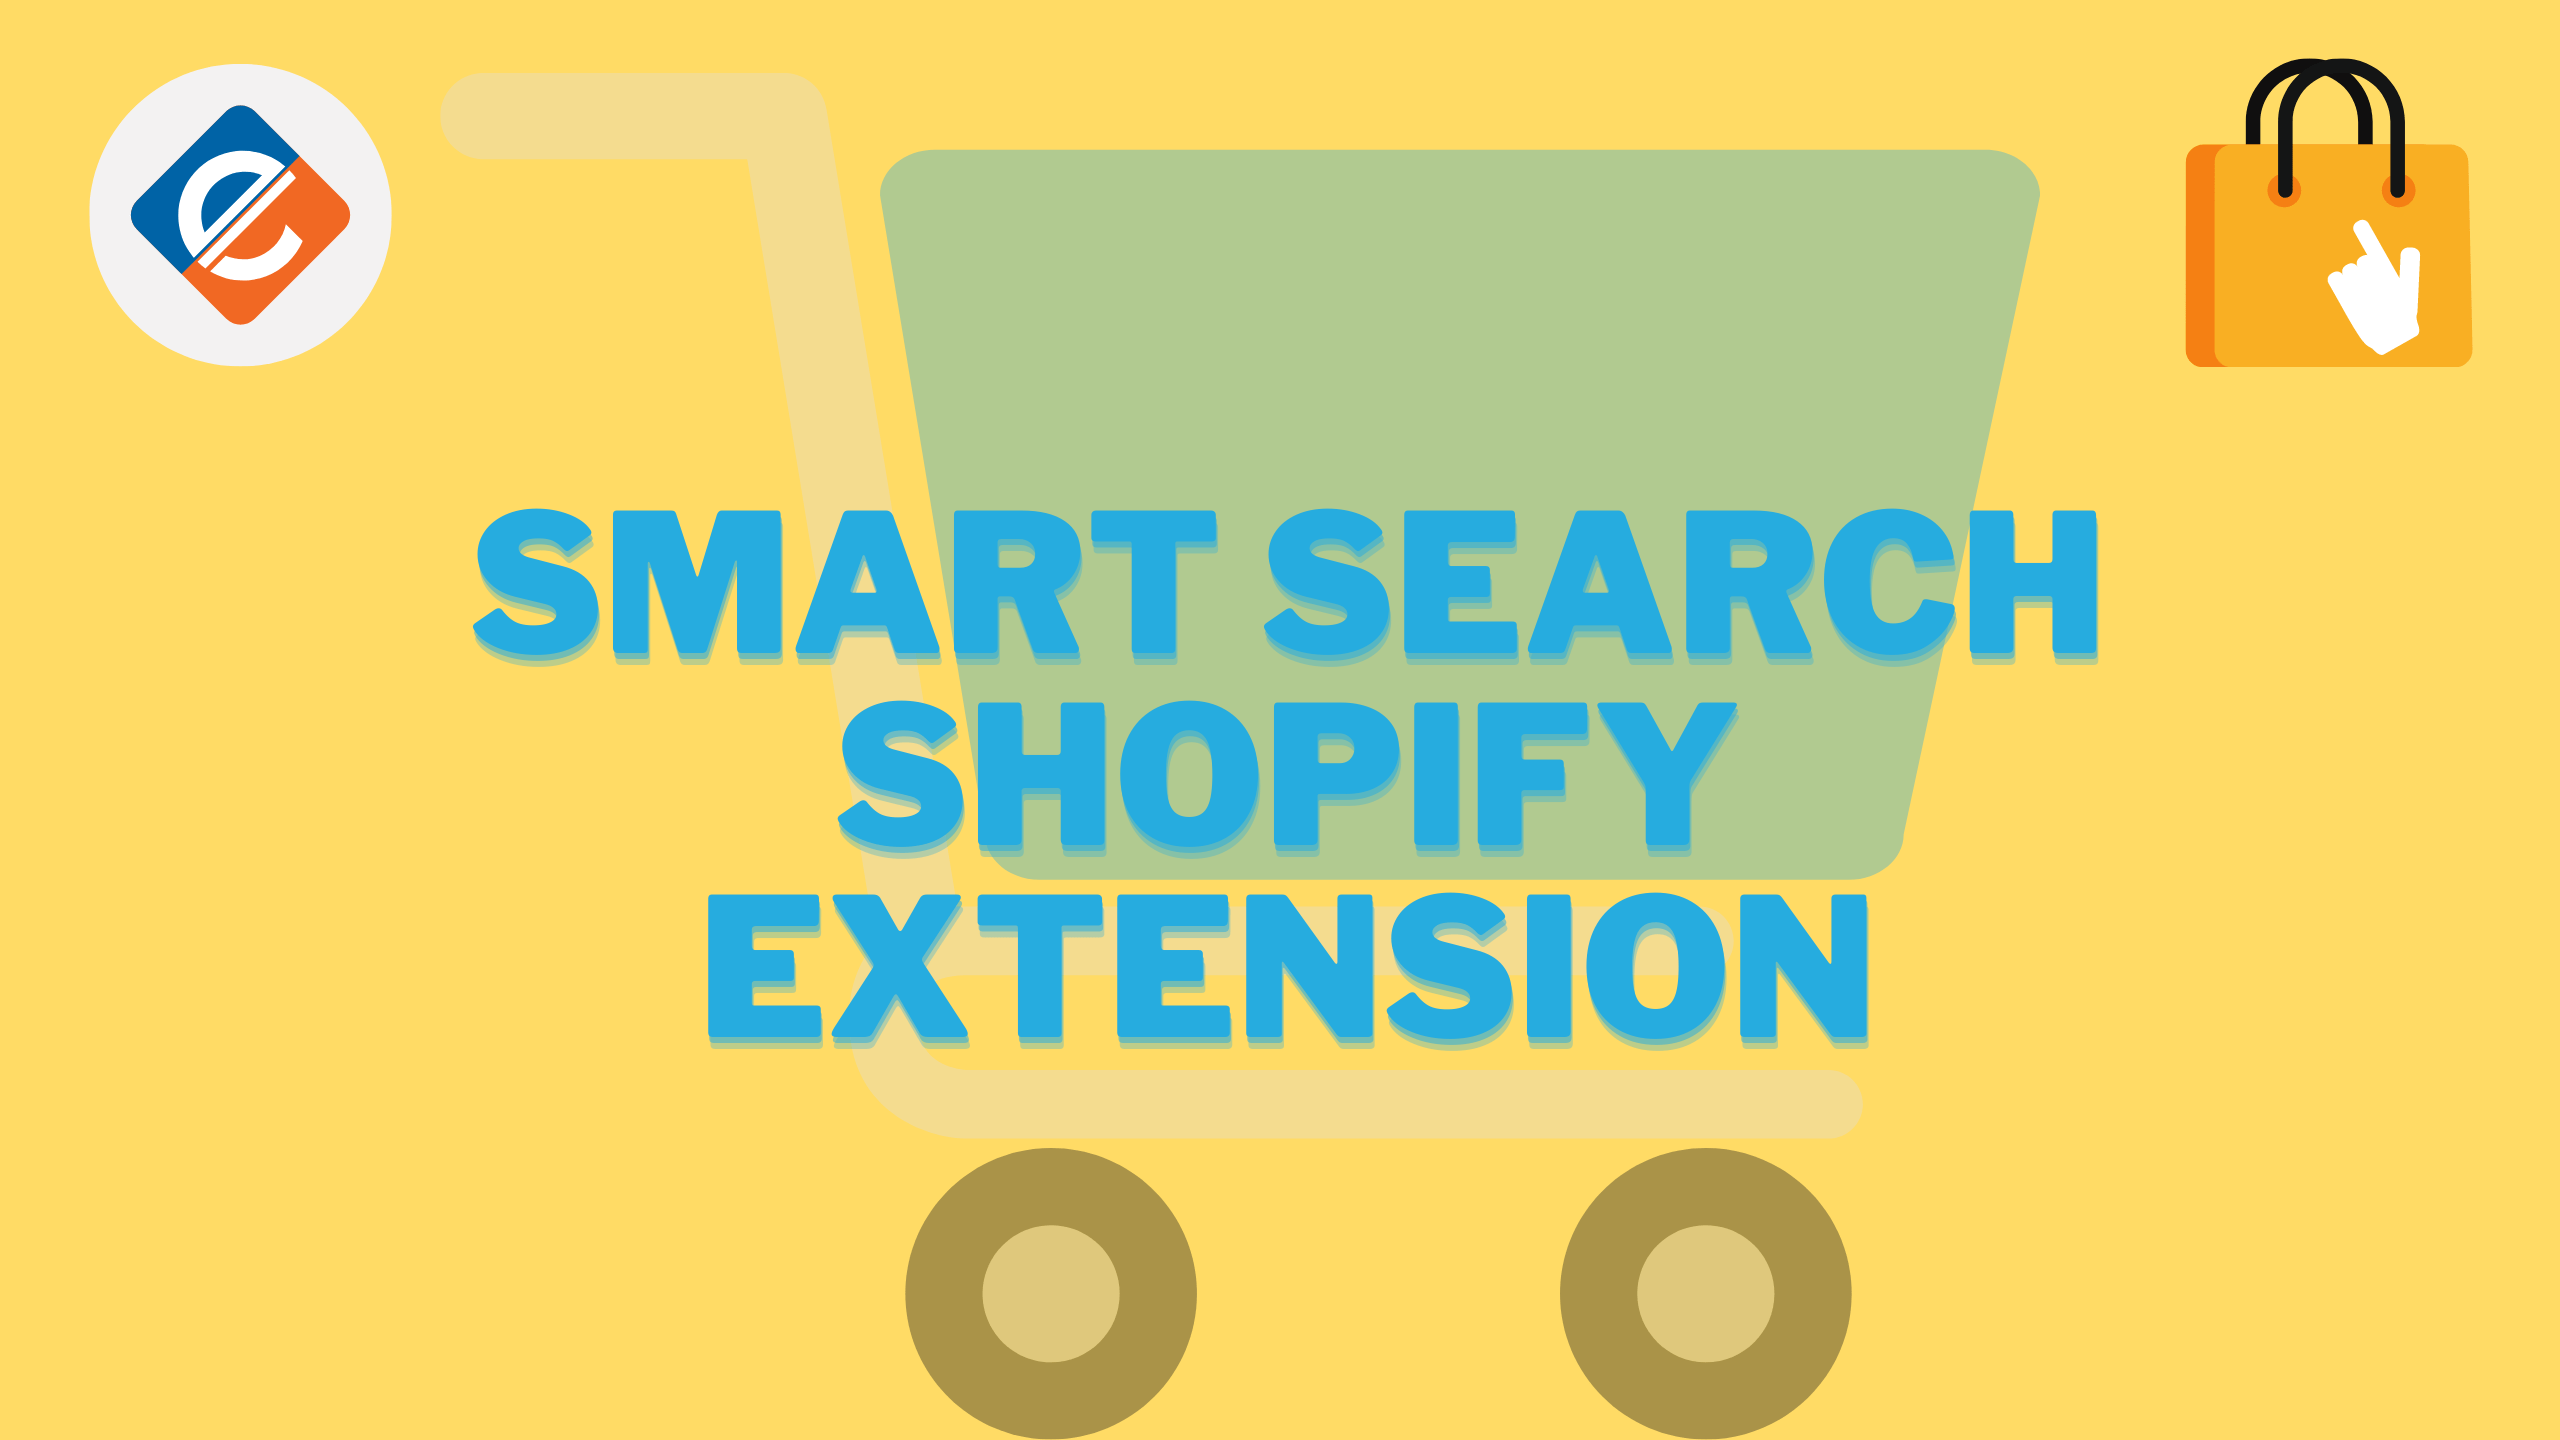 Smart Search Shopify Extension